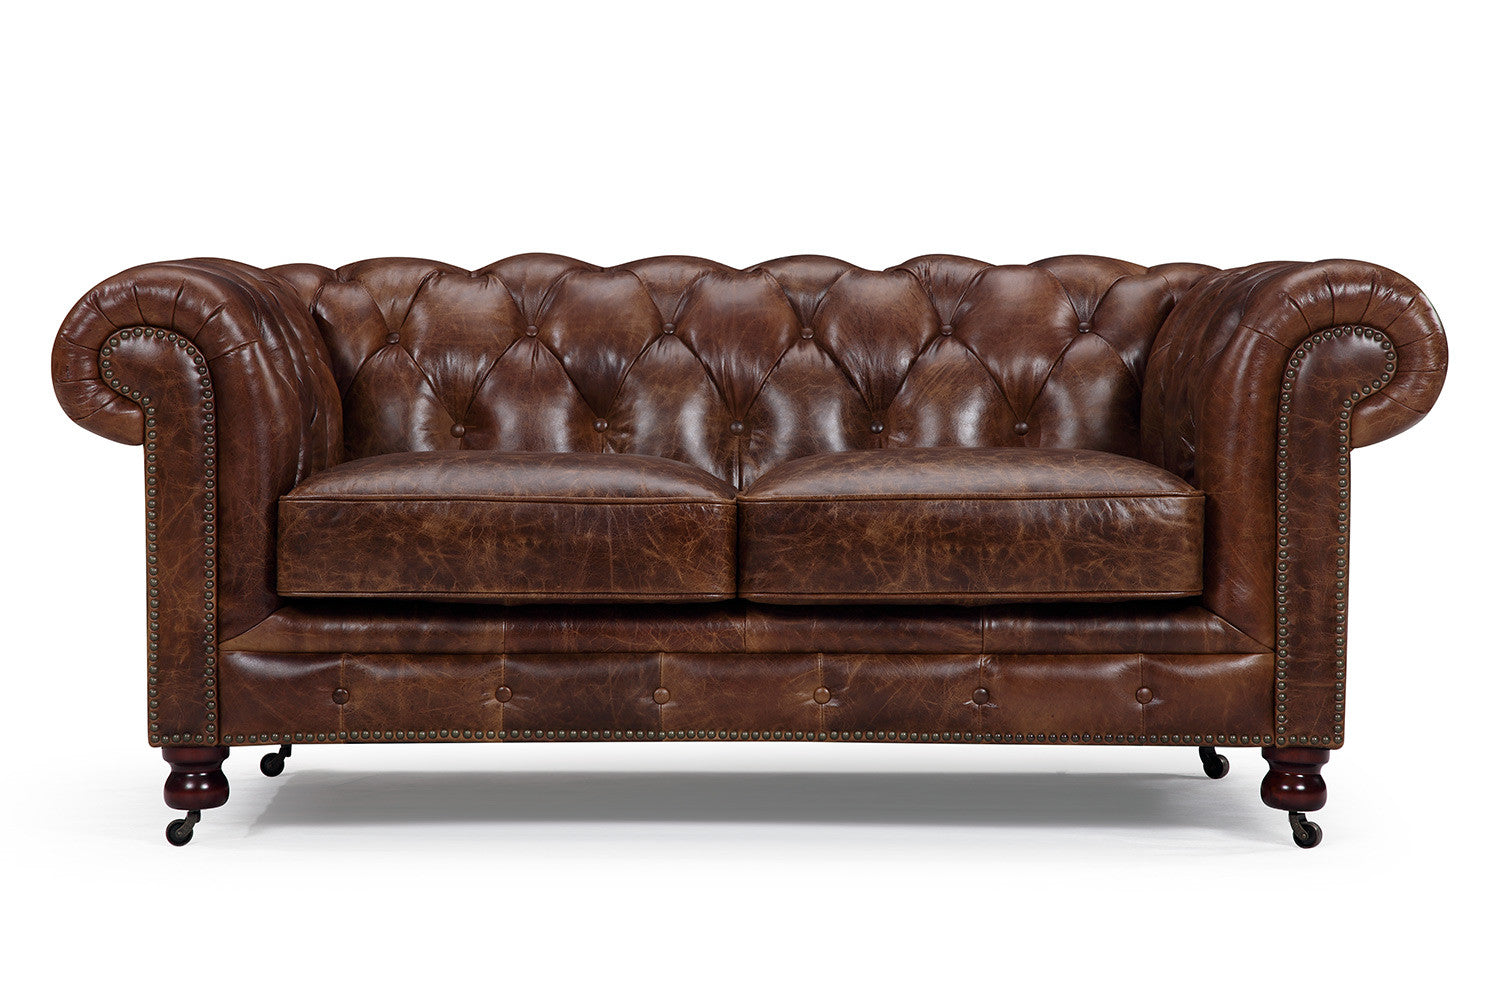 Canap chesterfield en cuir kensington 2 places rose moore - Canape chesterfield but ...